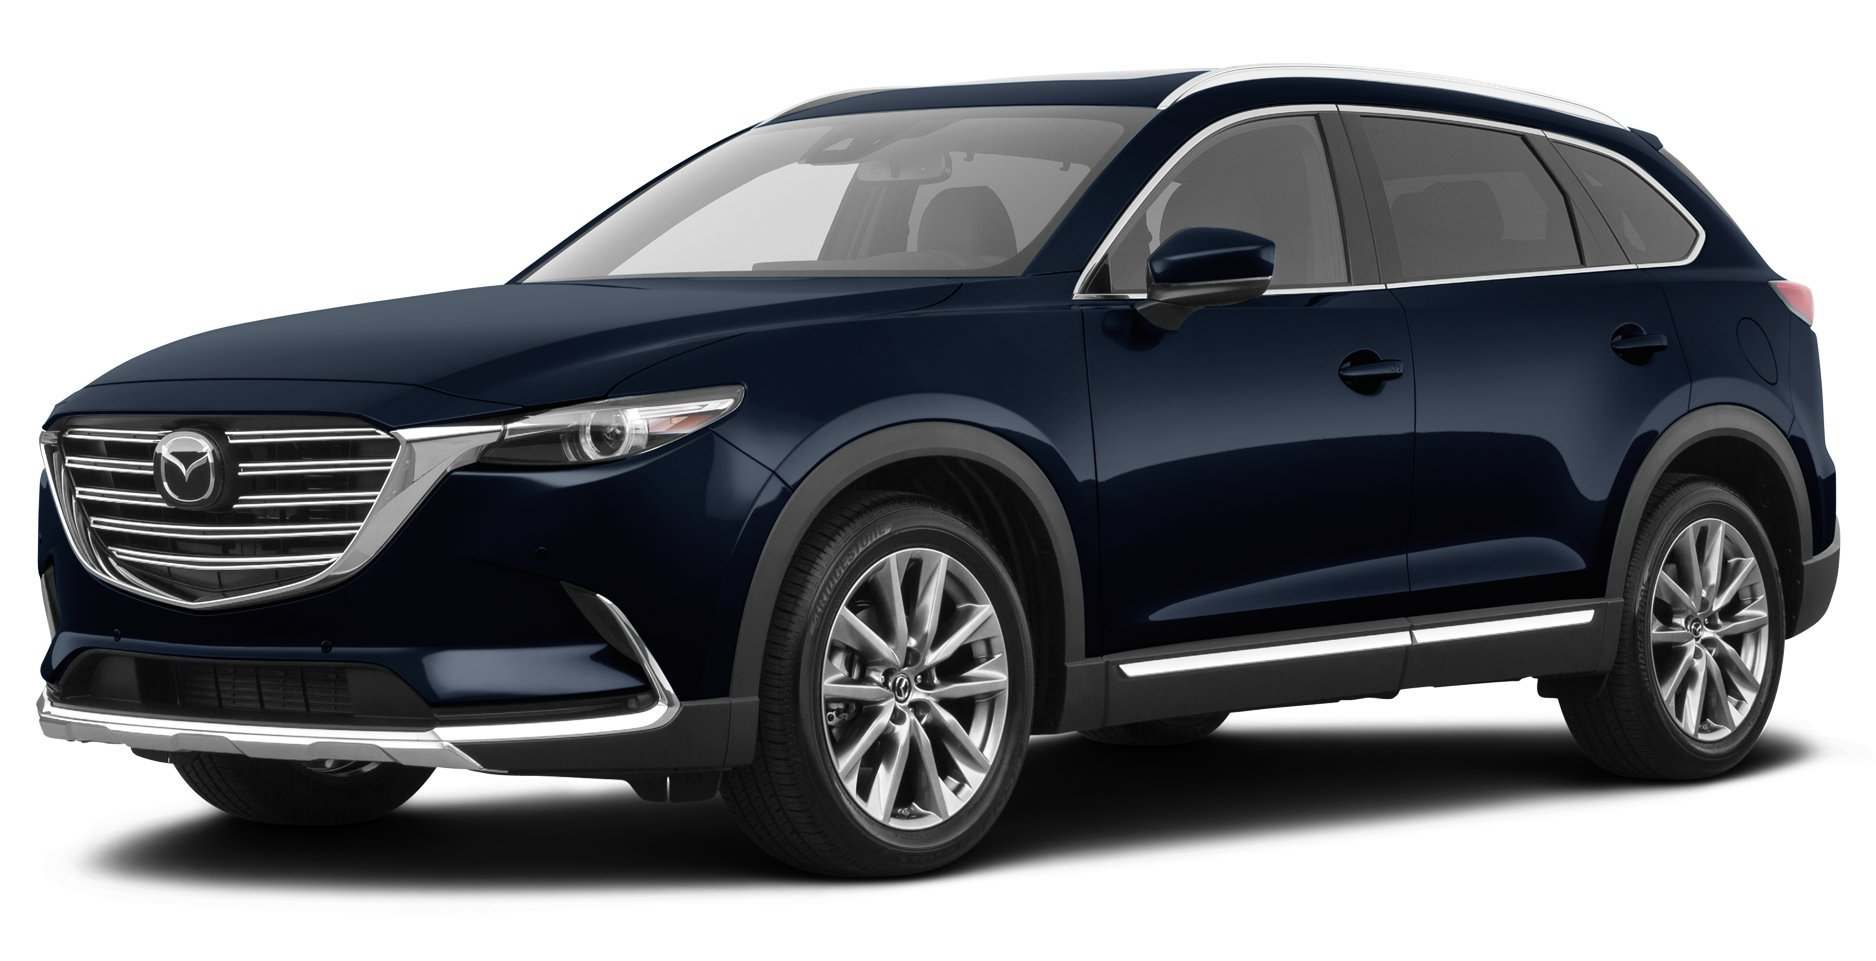 2018 mazda cx 9 reviews images and specs vehicles. Black Bedroom Furniture Sets. Home Design Ideas